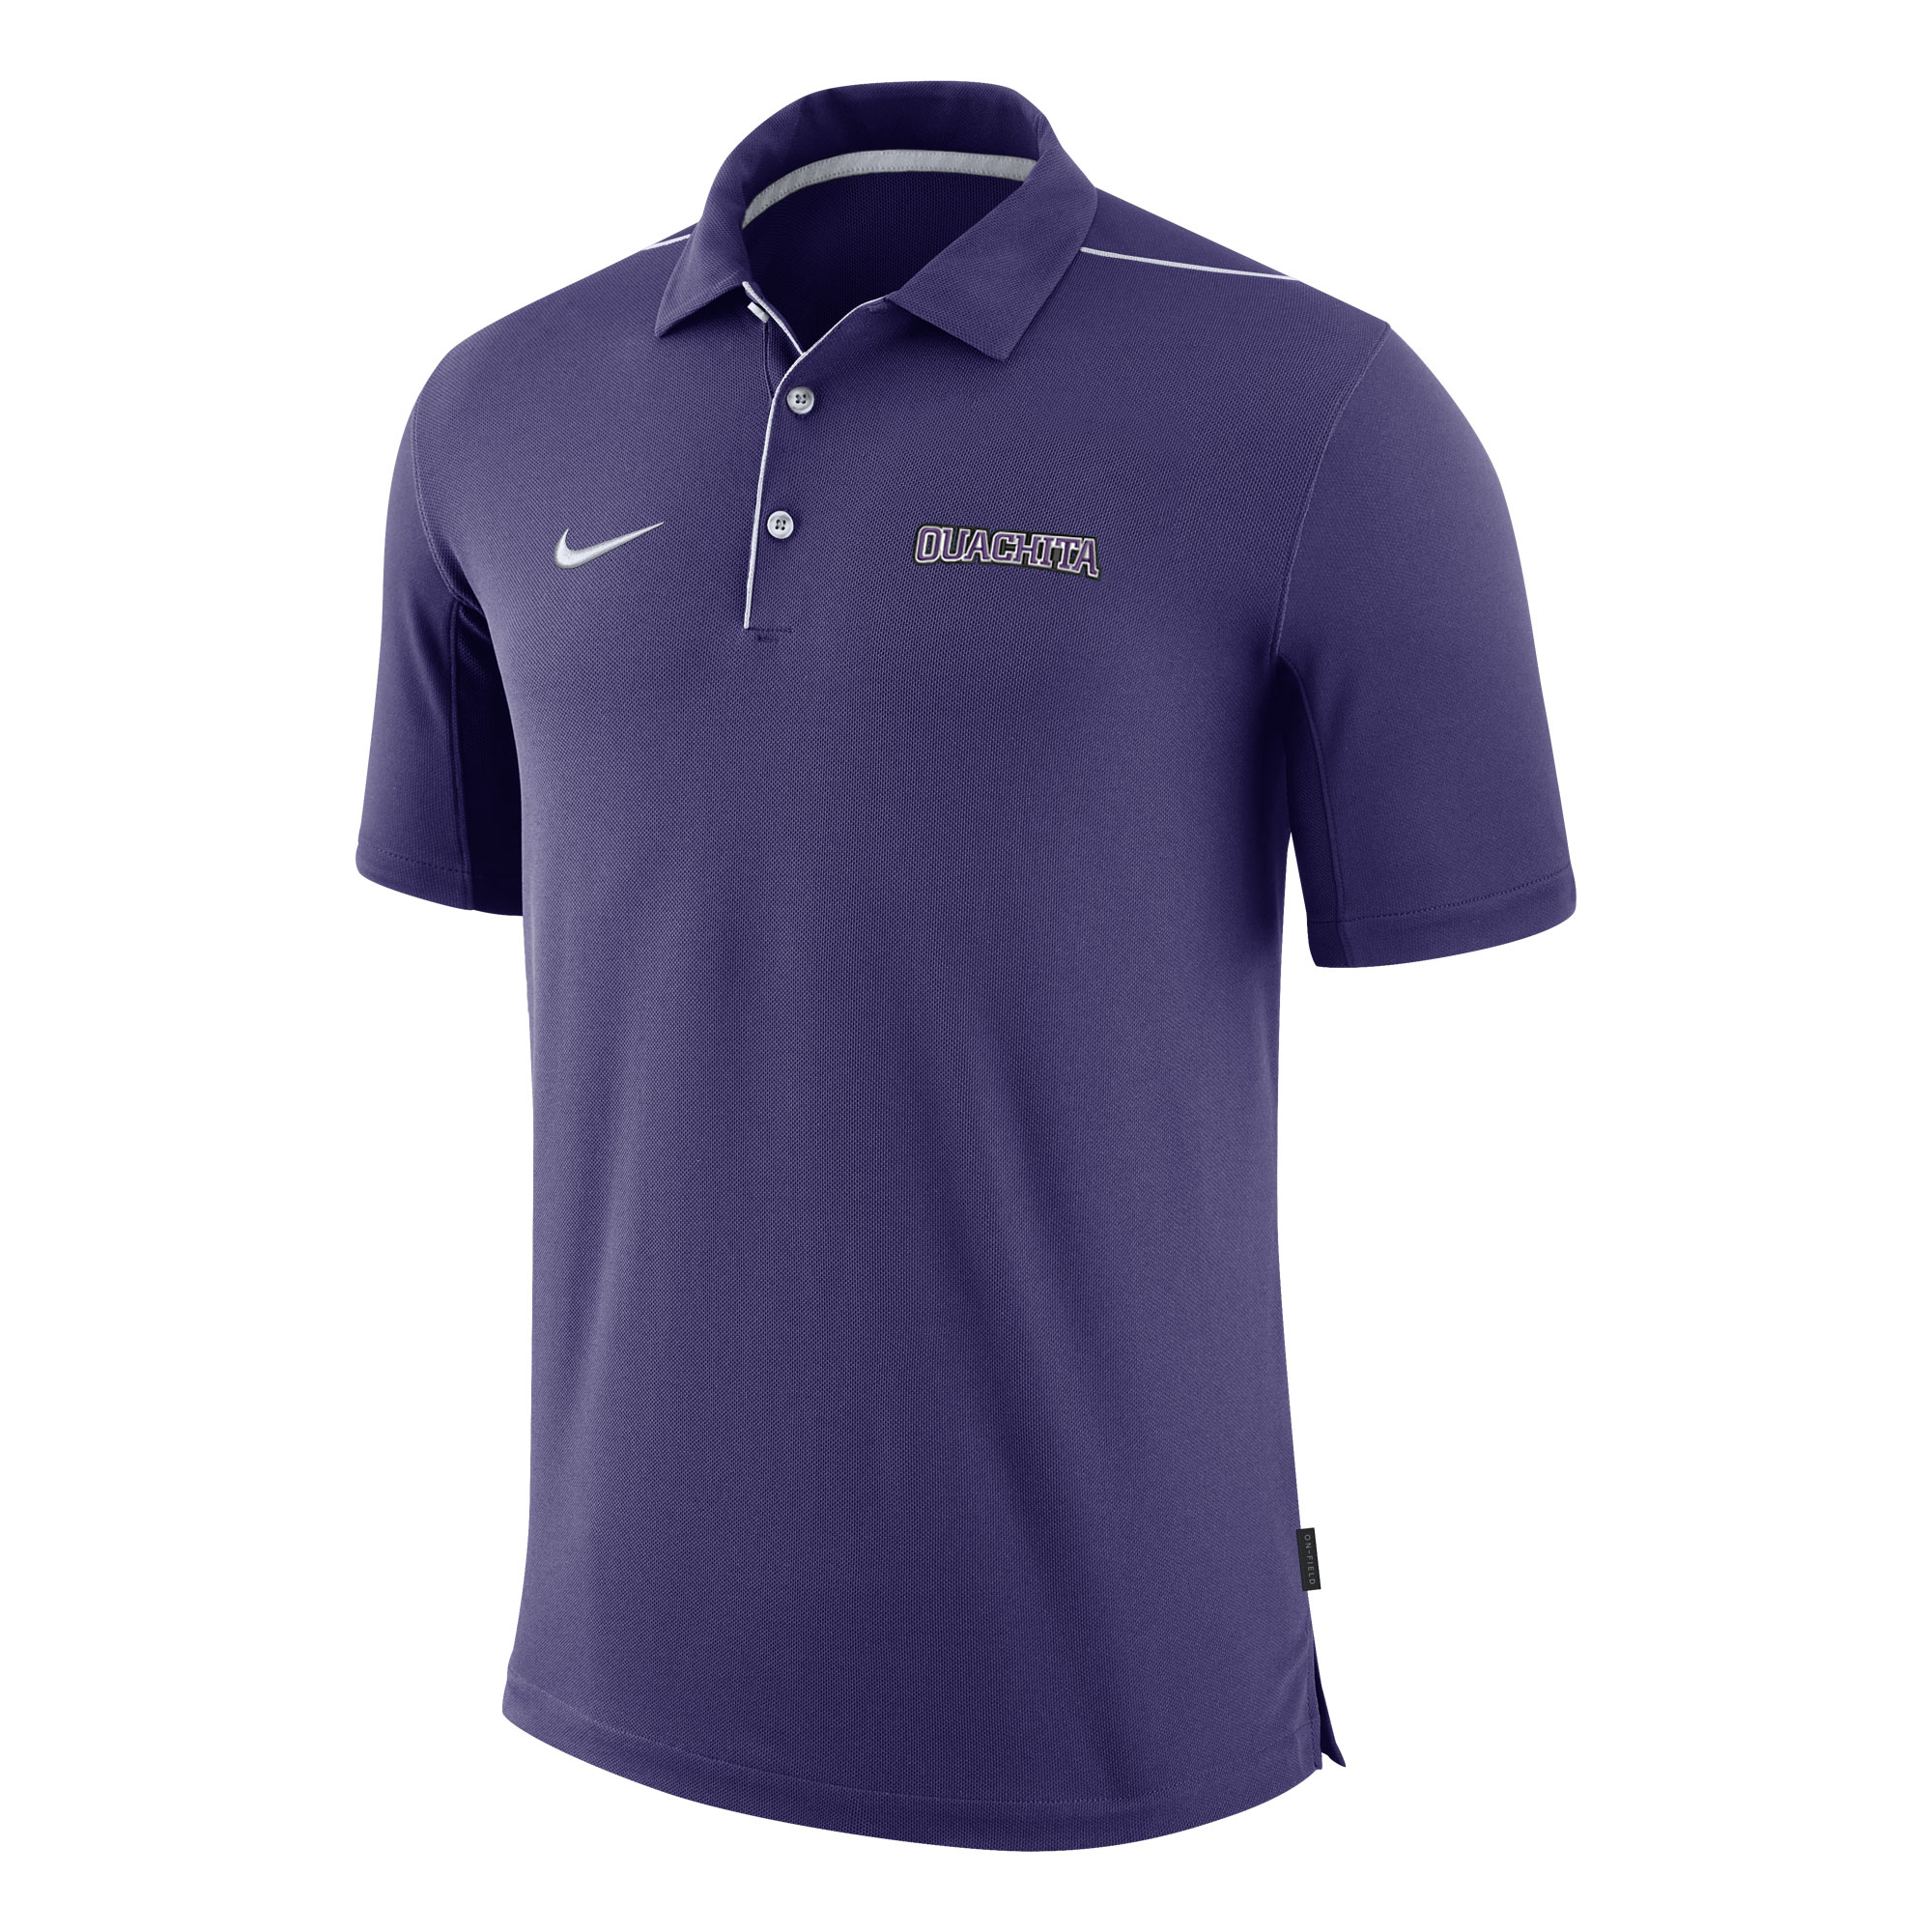 NIKE MEN'S TEAM ISSUE POLO